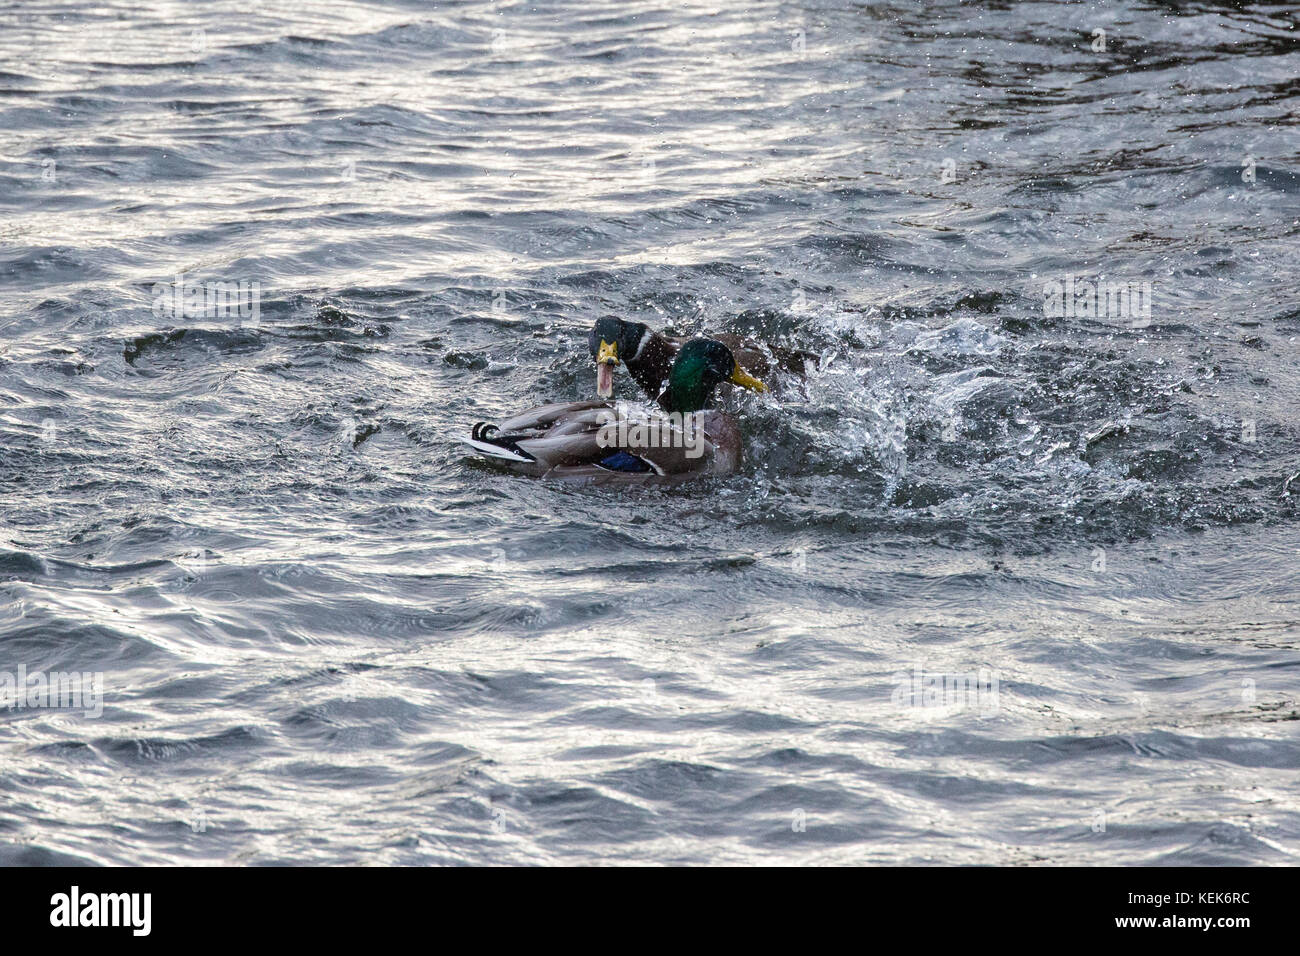 Windsor, UK. 21st October, 2017. Mallard drakes fight in the River Thames as Storm Brian passes across the UK. Credit: - Stock Image